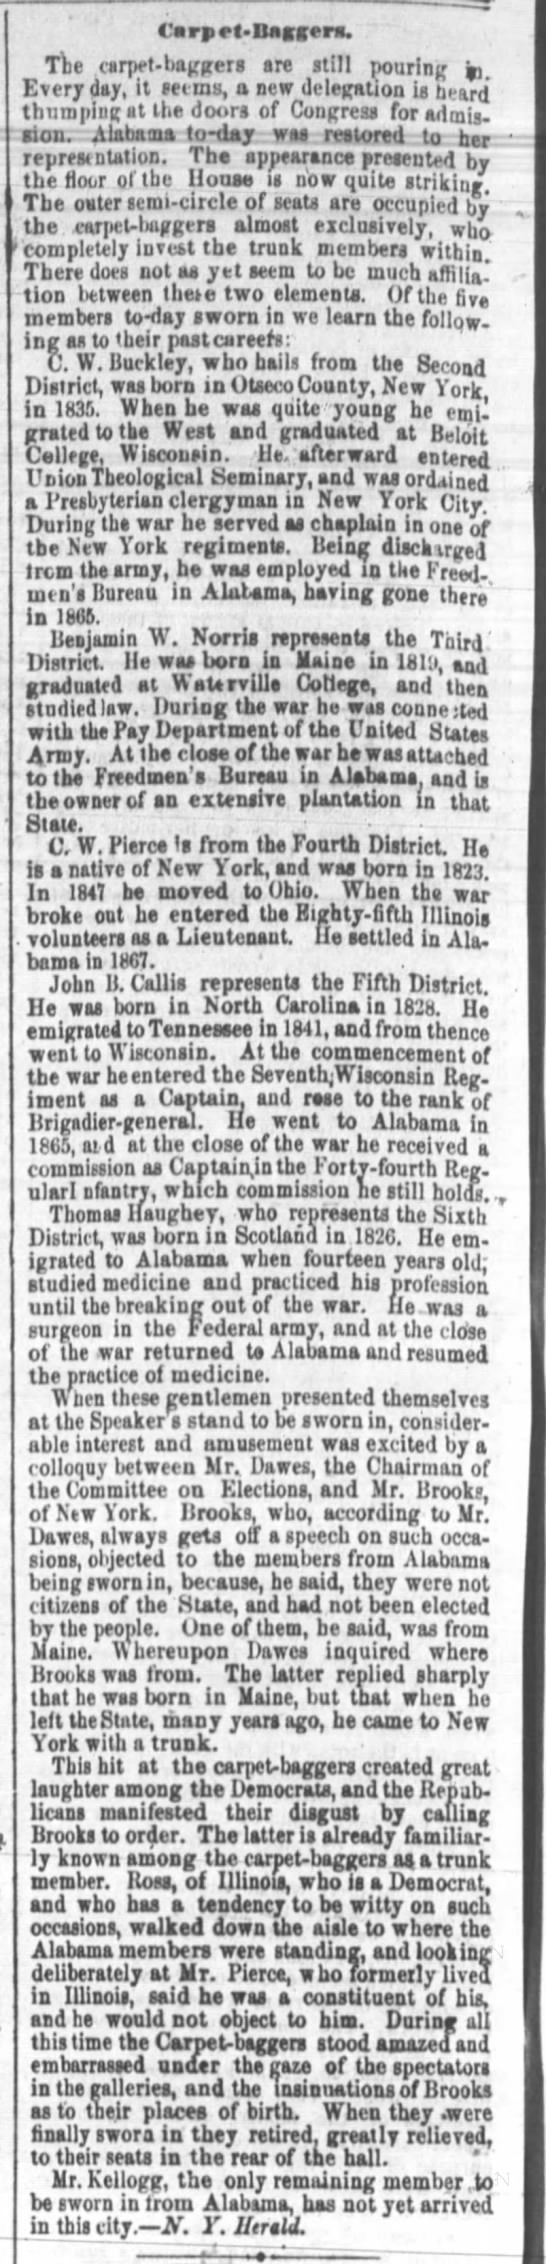 The Cincinnati Daily Equirer (July 24, 1868) - C'a rp rt-Bacgera. Tbe carpW-bairgers are still...